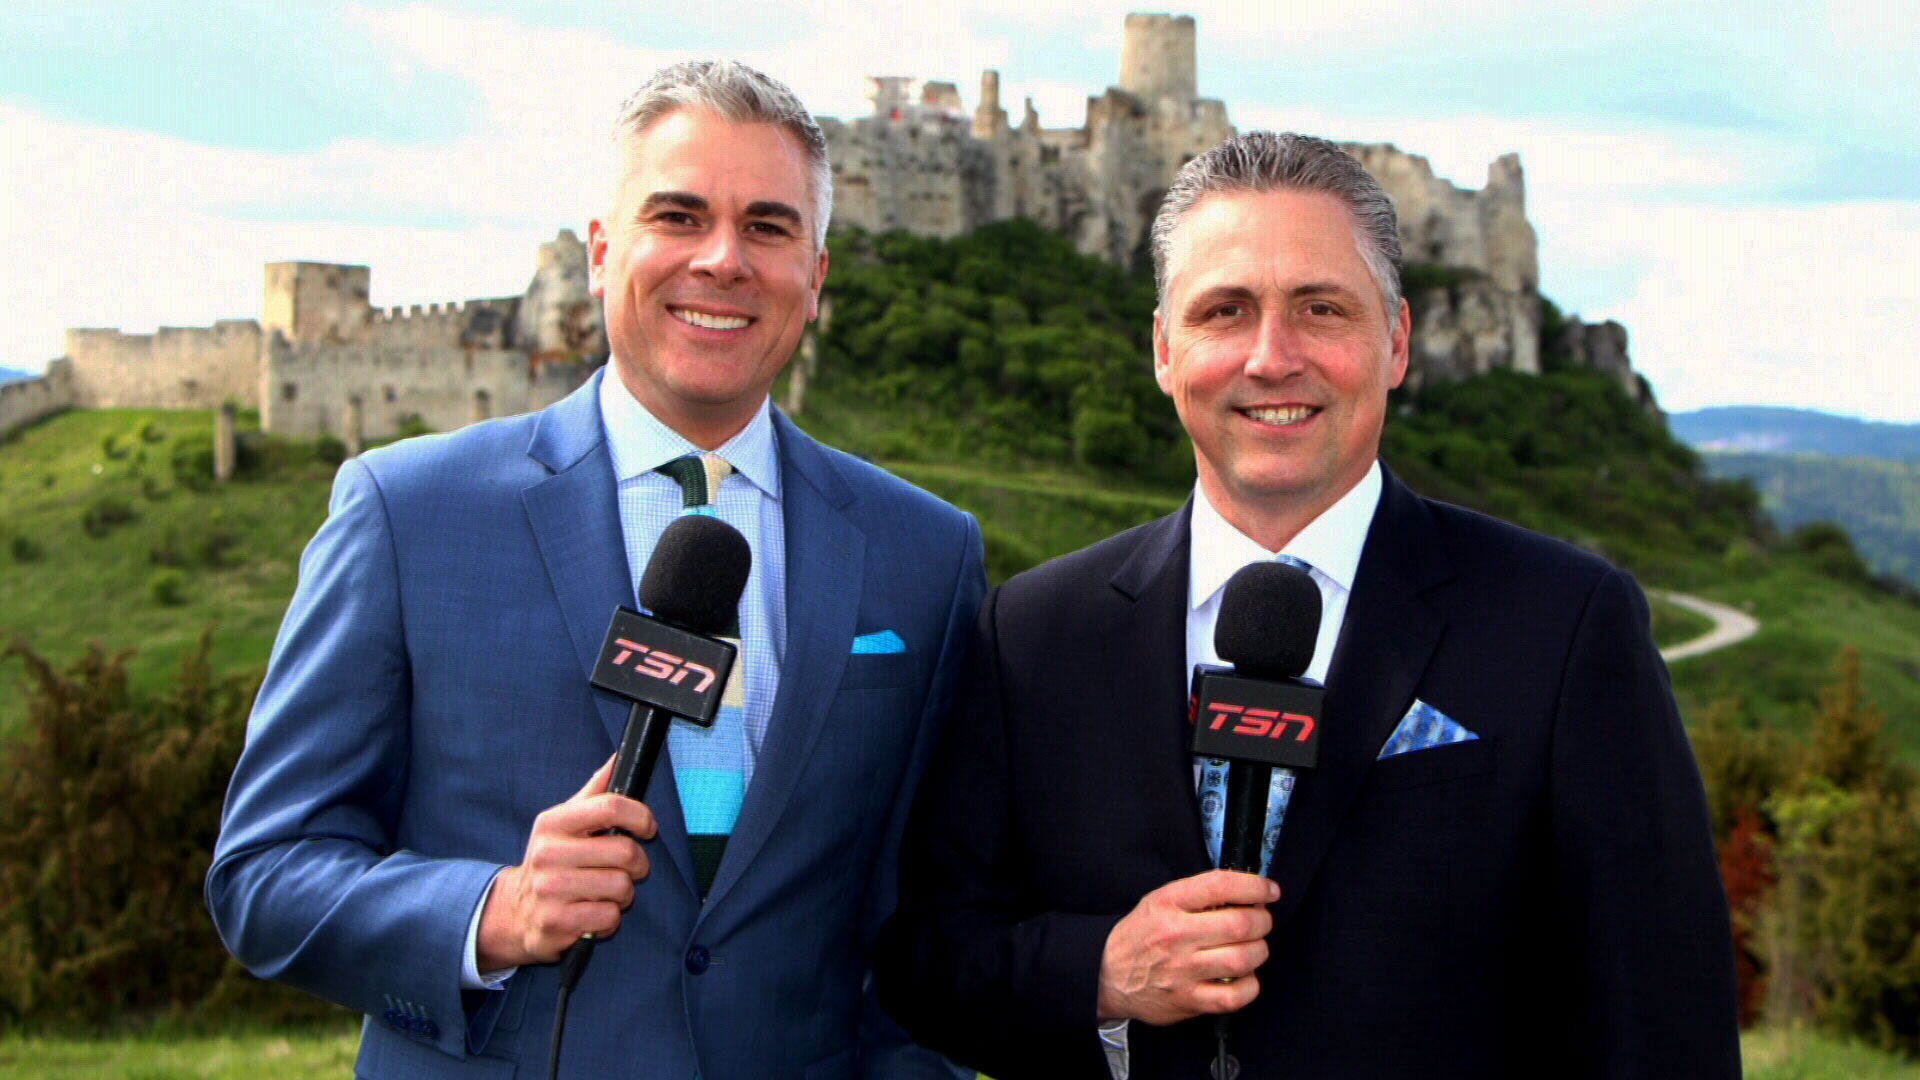 Dreger, Wallace take in the sights at Spiš Castle